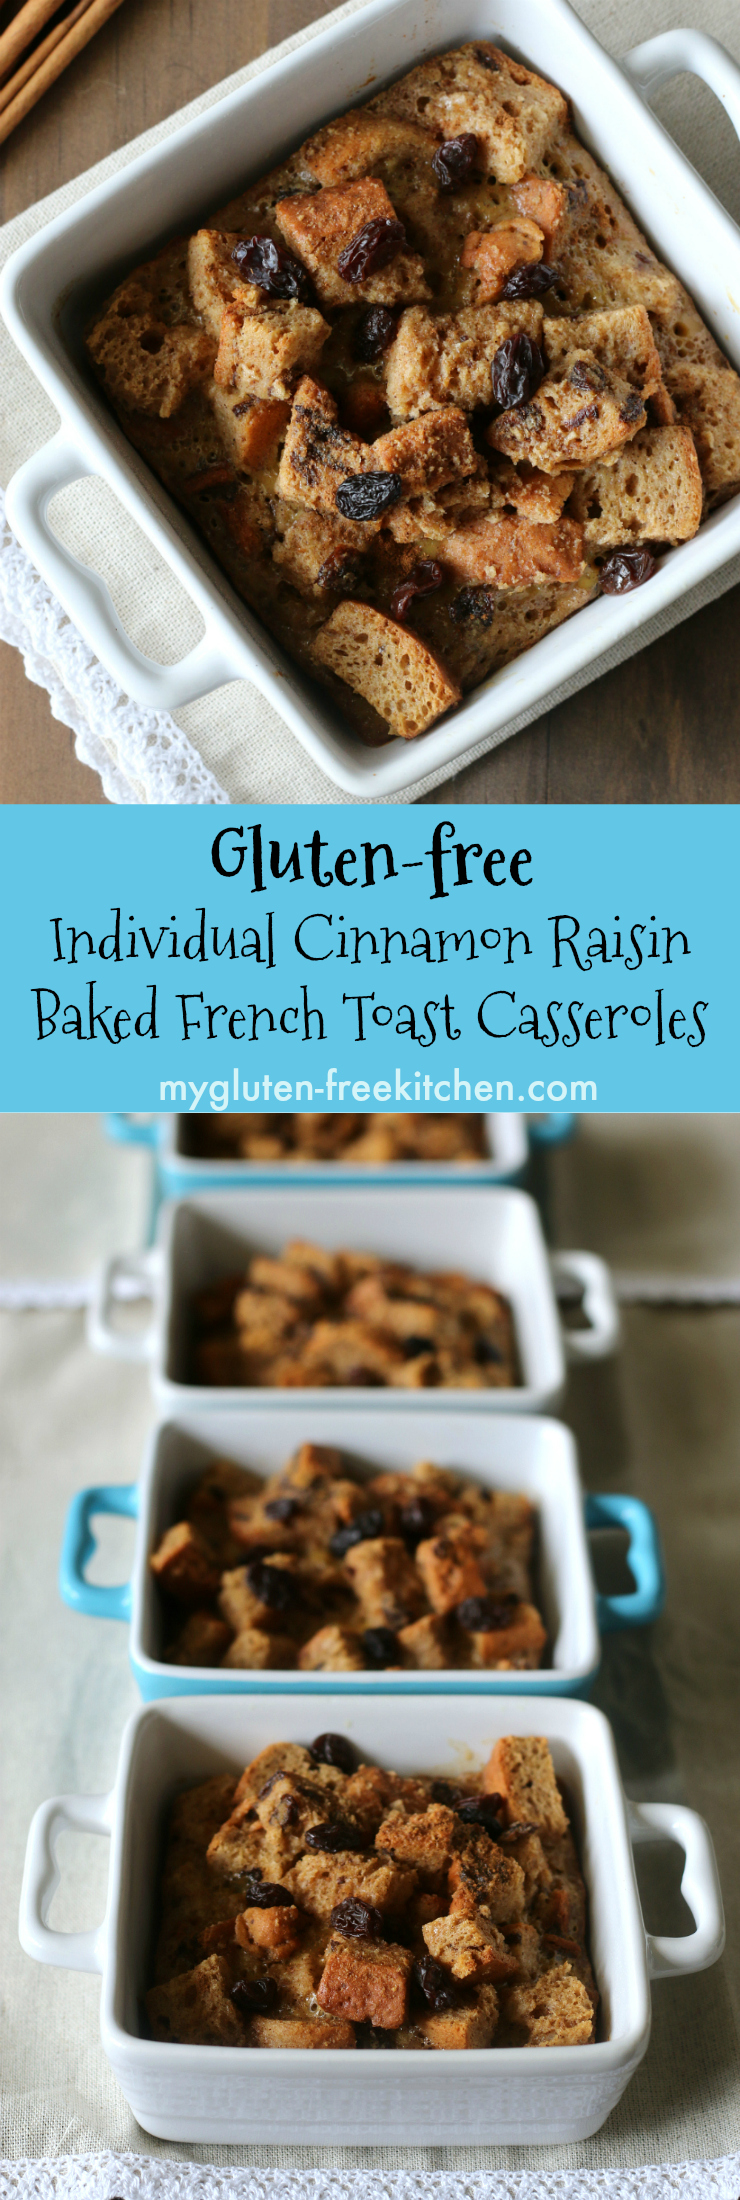 Gluten-free Individual Cinnamon Raisin Baked French Toast Casseroles. Perfect recipe for those special occasion brunches. Yummy gluten-free breakfast casserole.